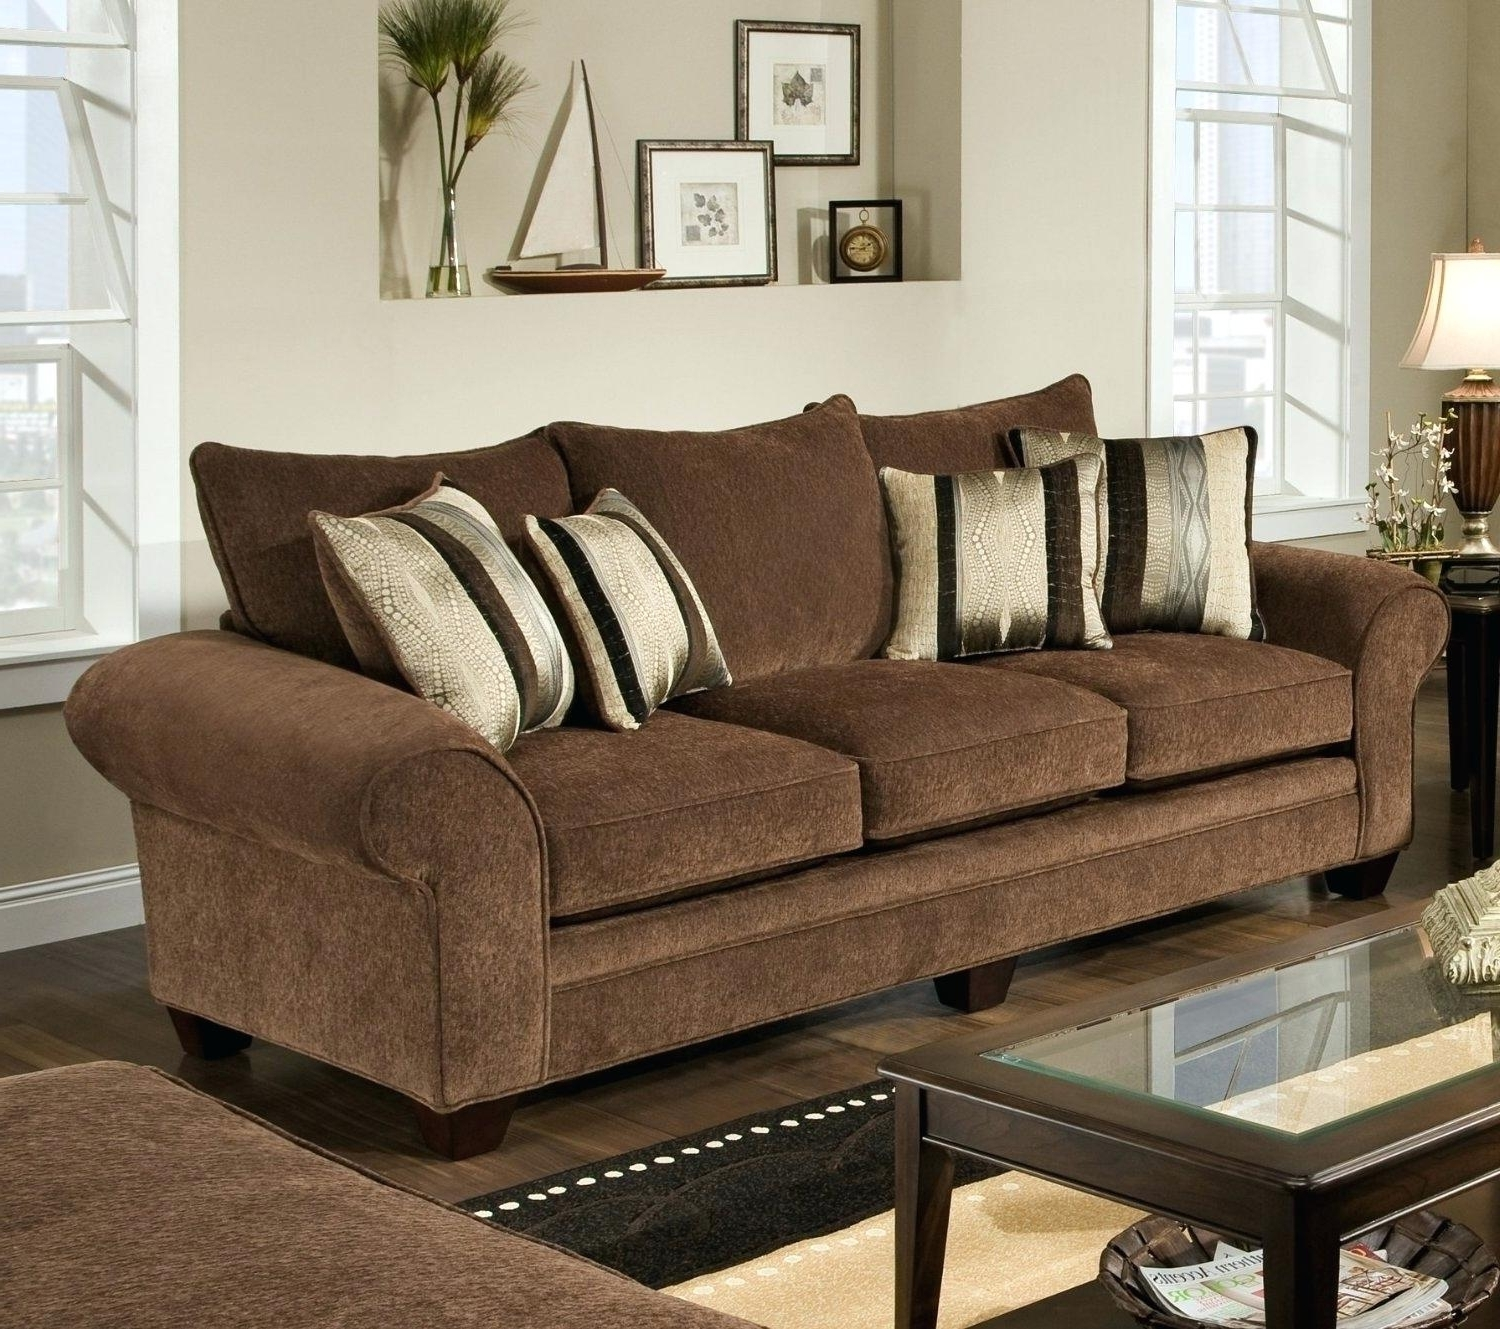 Berkline Sofas With Regard To Latest Berkline Sofa Sofas Sams Club Recliner Costco Furniture Recliners (View 8 of 20)